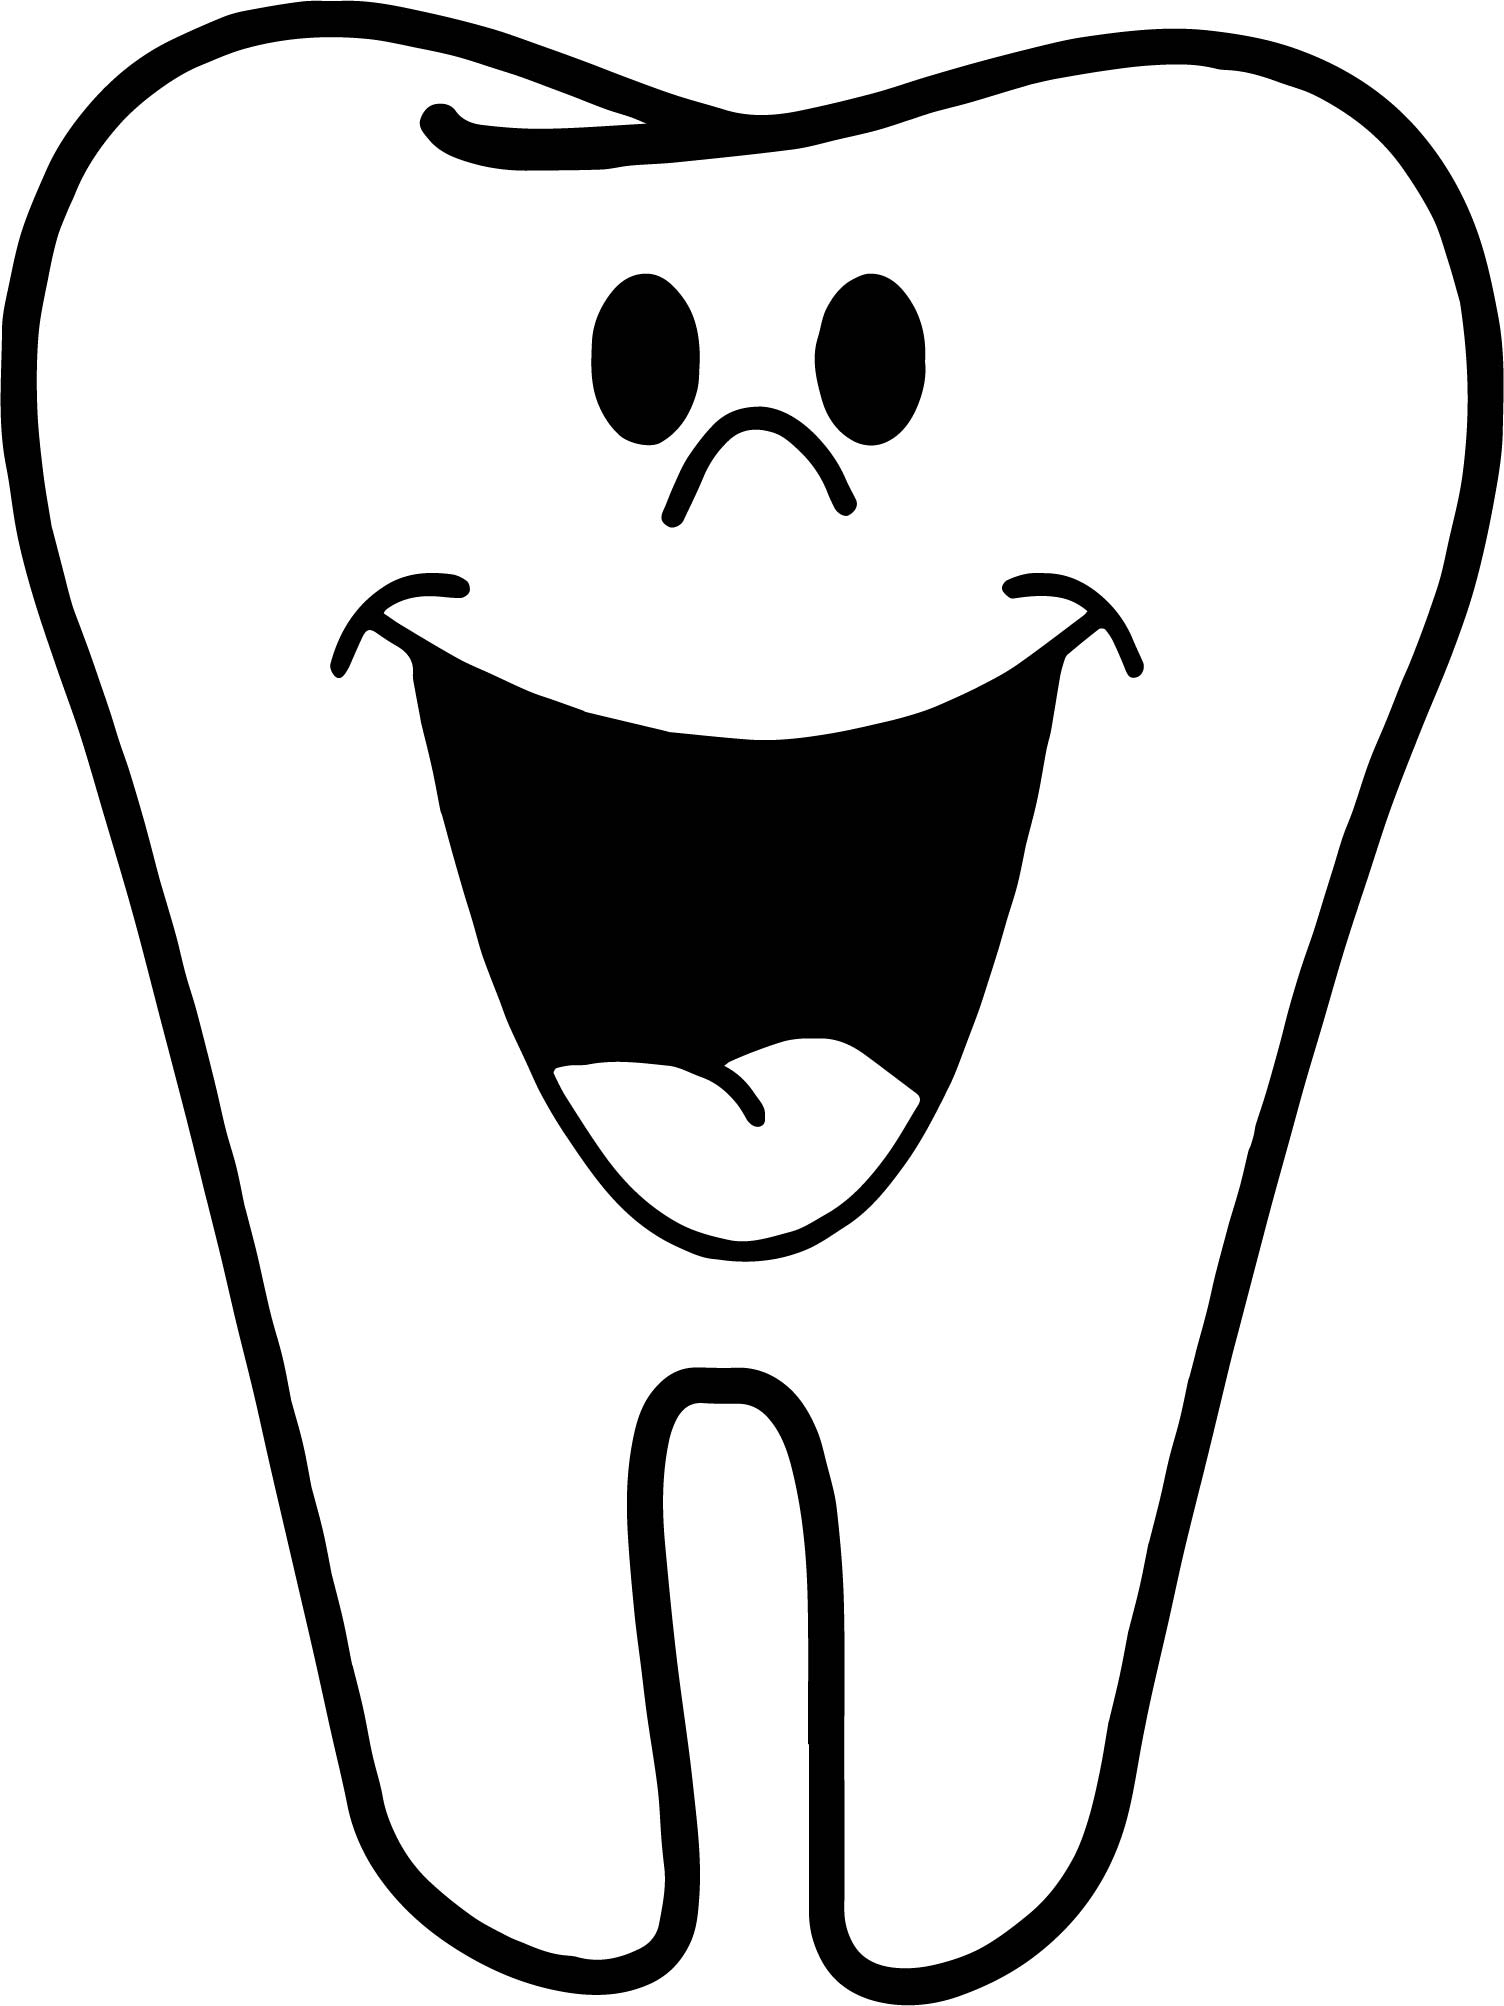 Teeth Coloring Pages Gallery | Free Coloring Sheets